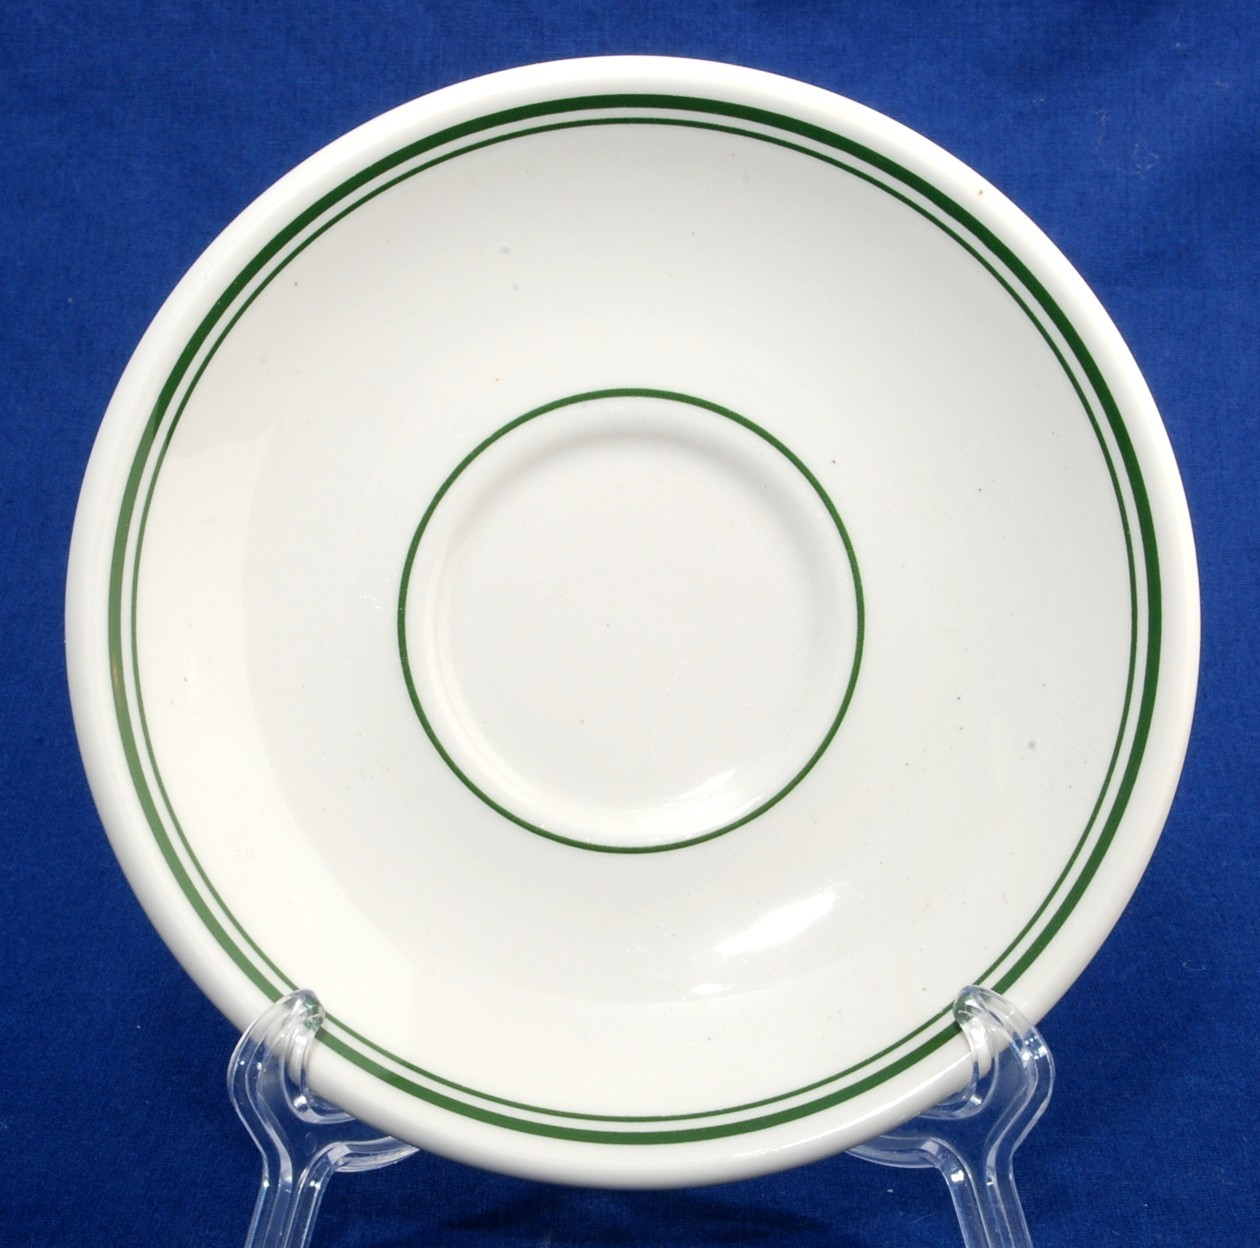 Primary image for Homer Laughlin Restaurant Ware Saucer Green Lines China Unused